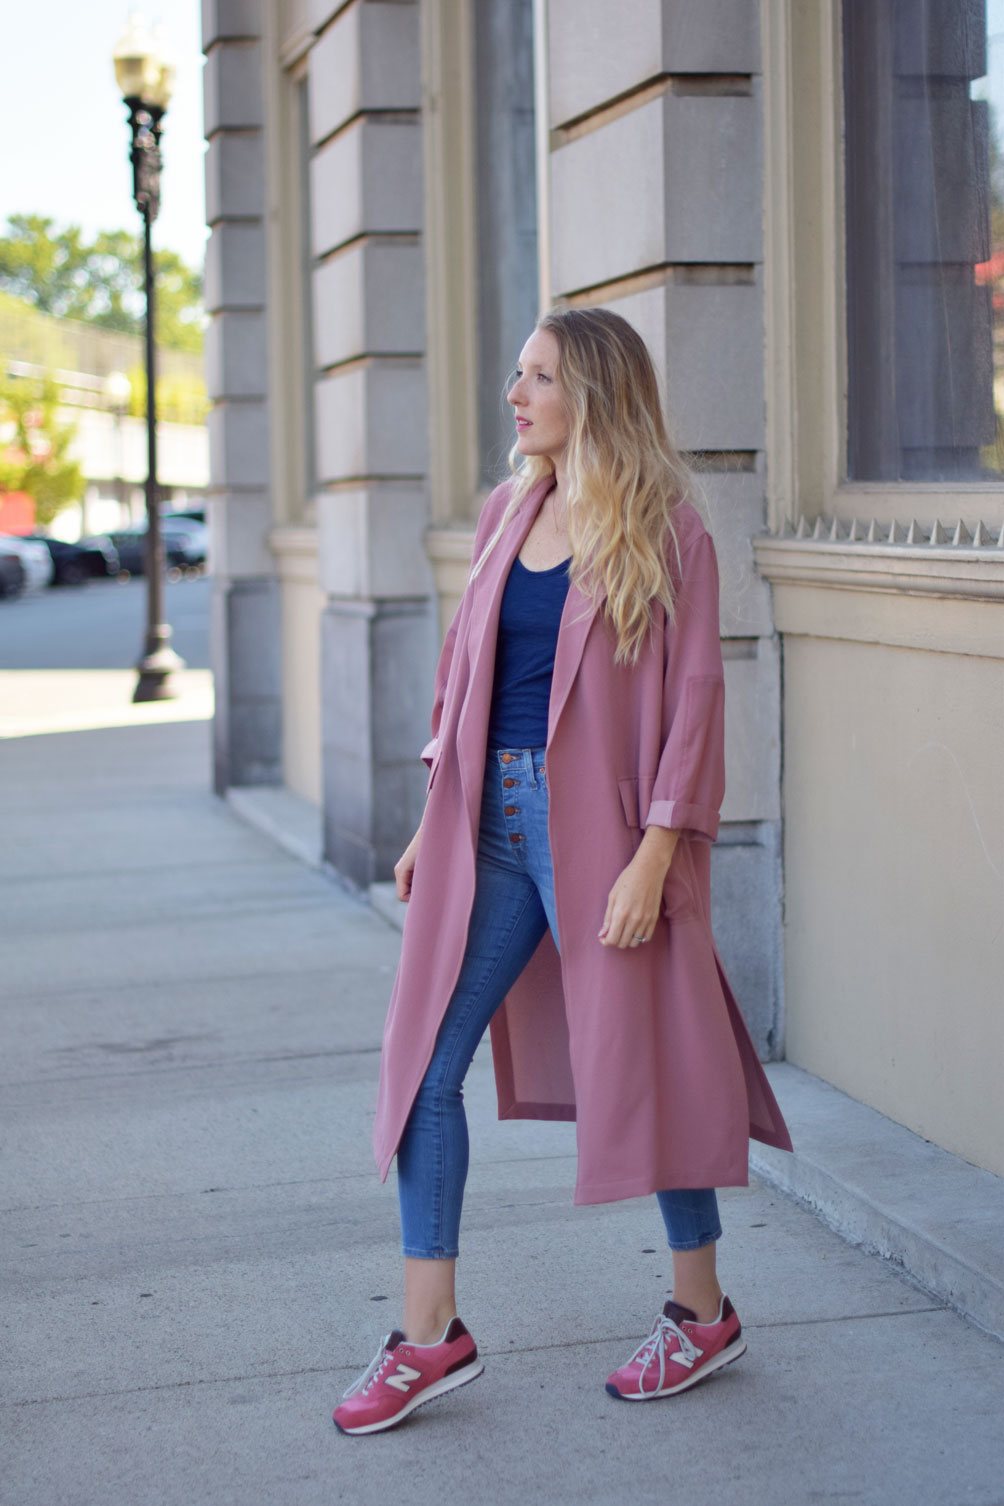 Leslie Musser wears a paneled duster coat with button-fly jeans and pink sneakers on one brass fox